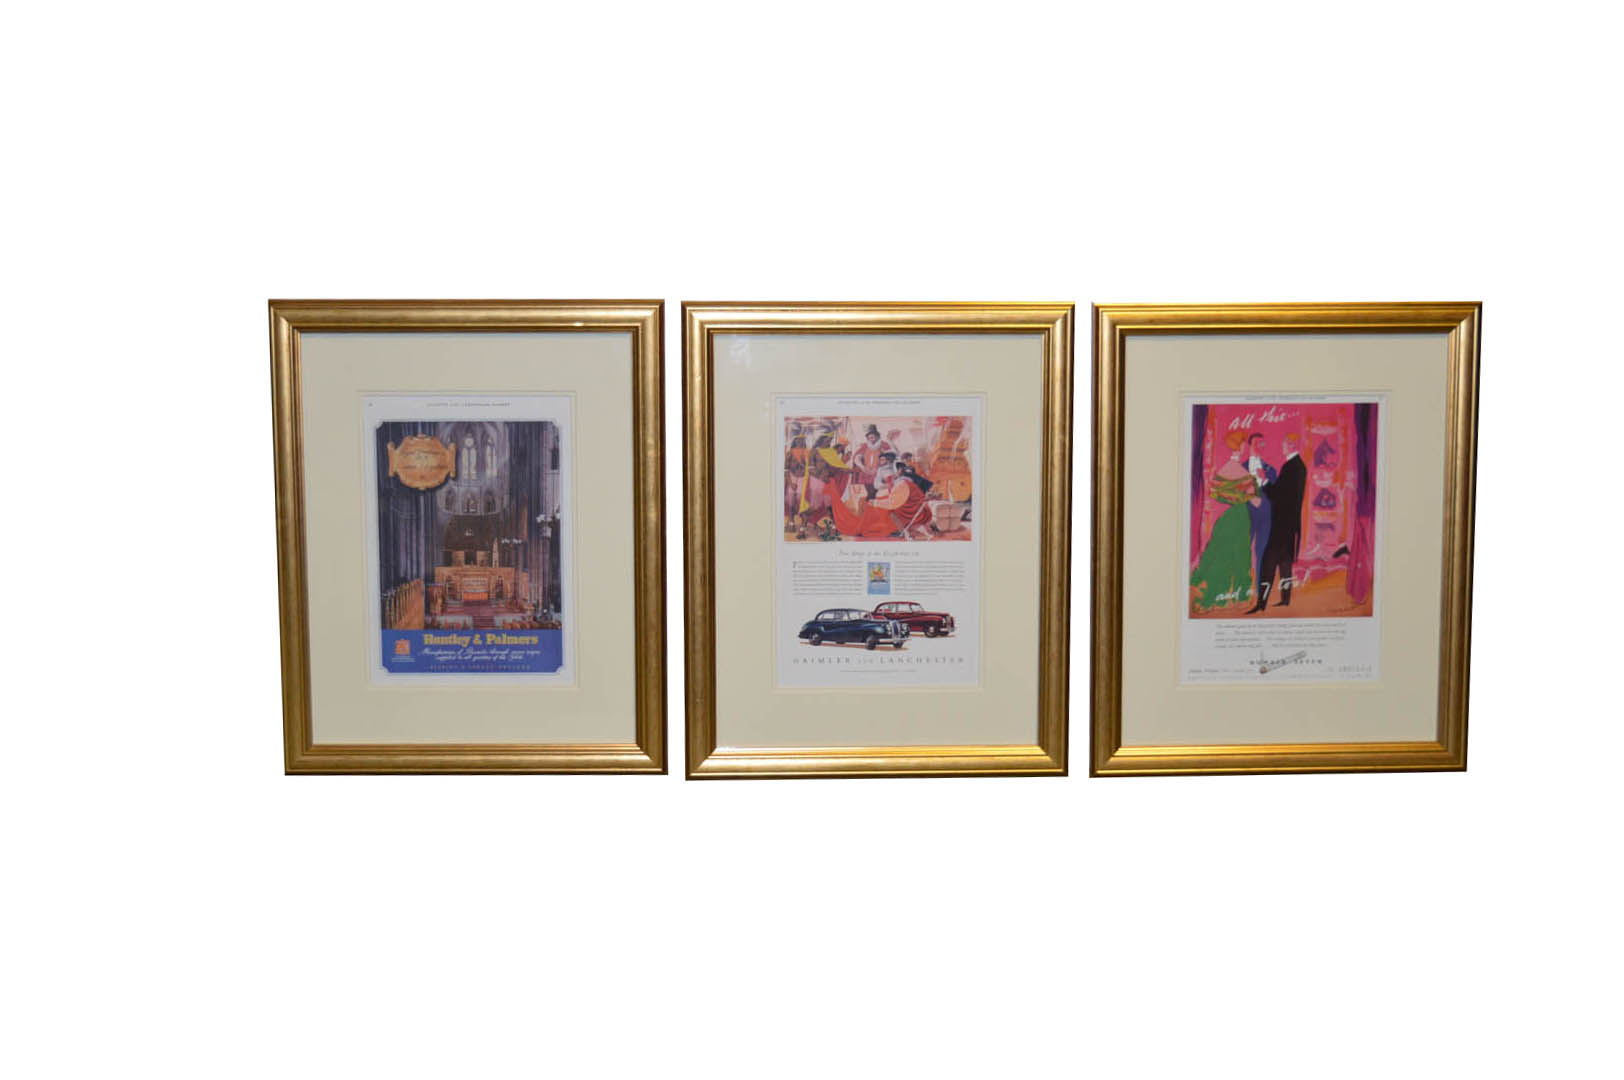 Lot 47 - A Set of Three Nicely Framed Advertising Prints